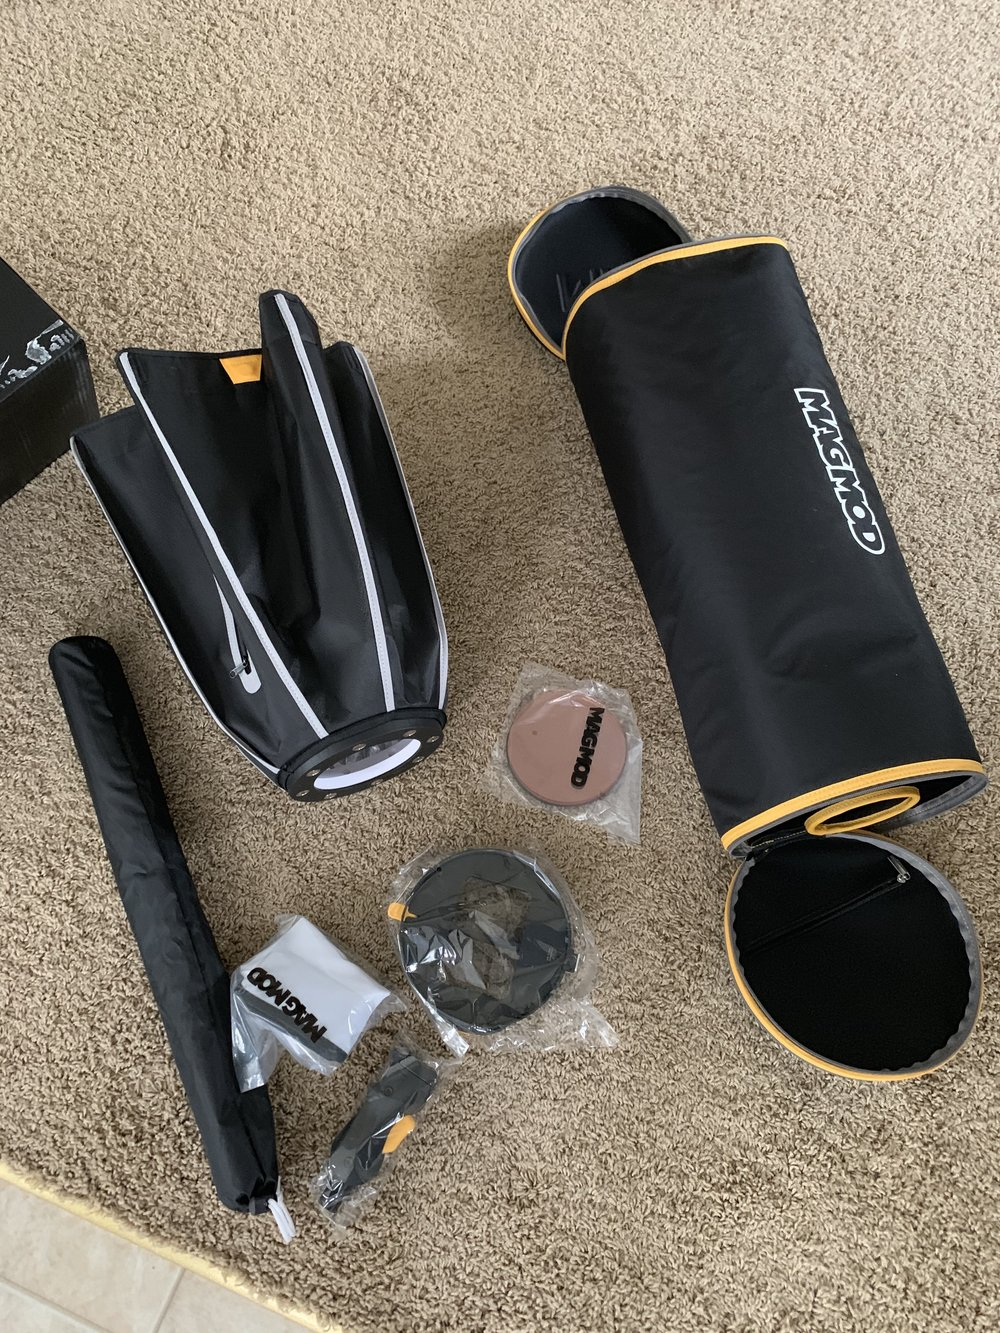 After a quick unpack. The pro kit includes almost everything you need to get started (except mag grips for your flashes).